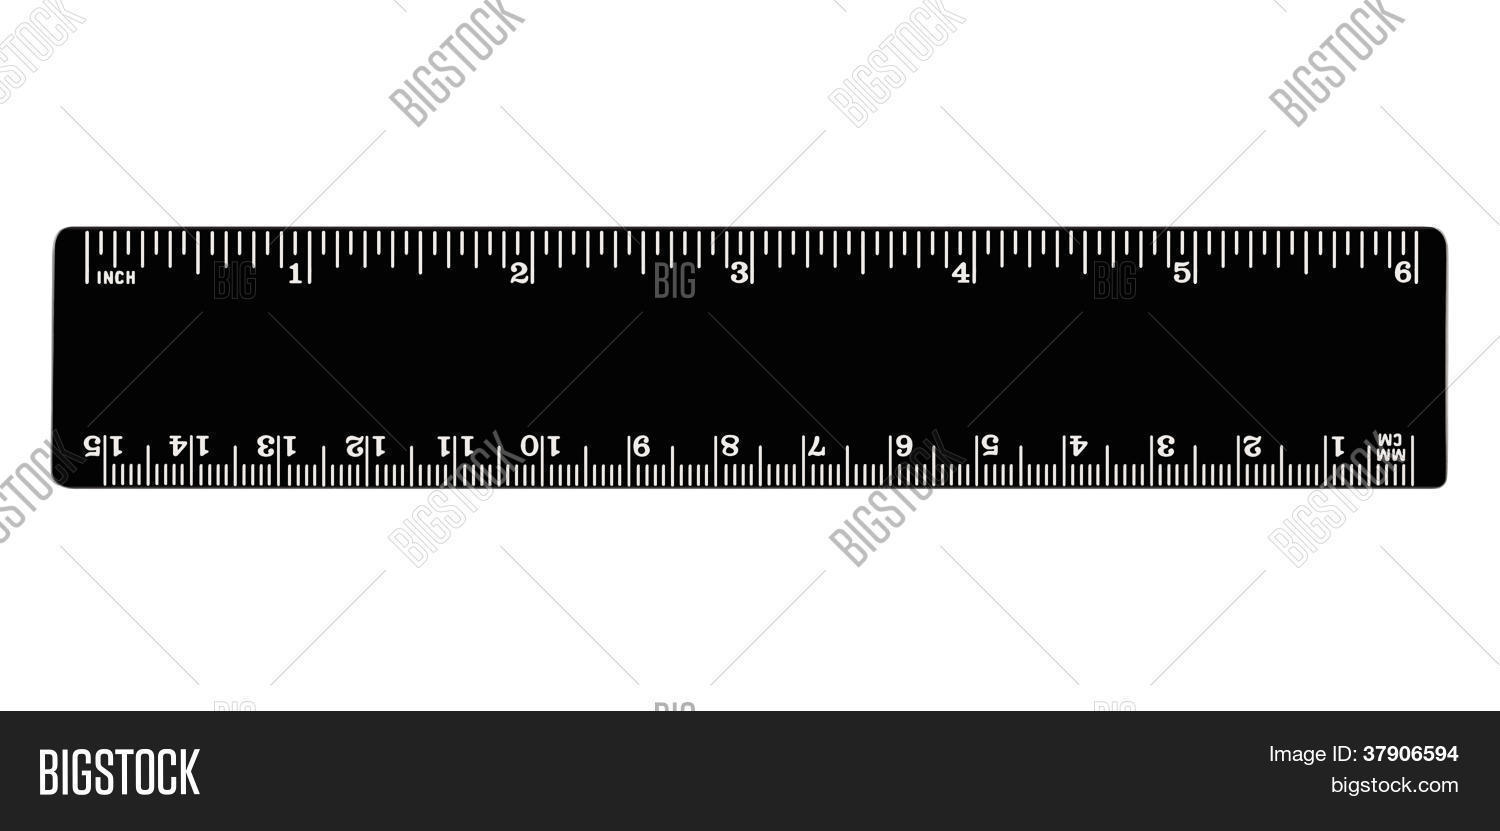 Ich Cm Black Ruler Isolated Image Photo Free Trial Bigstock